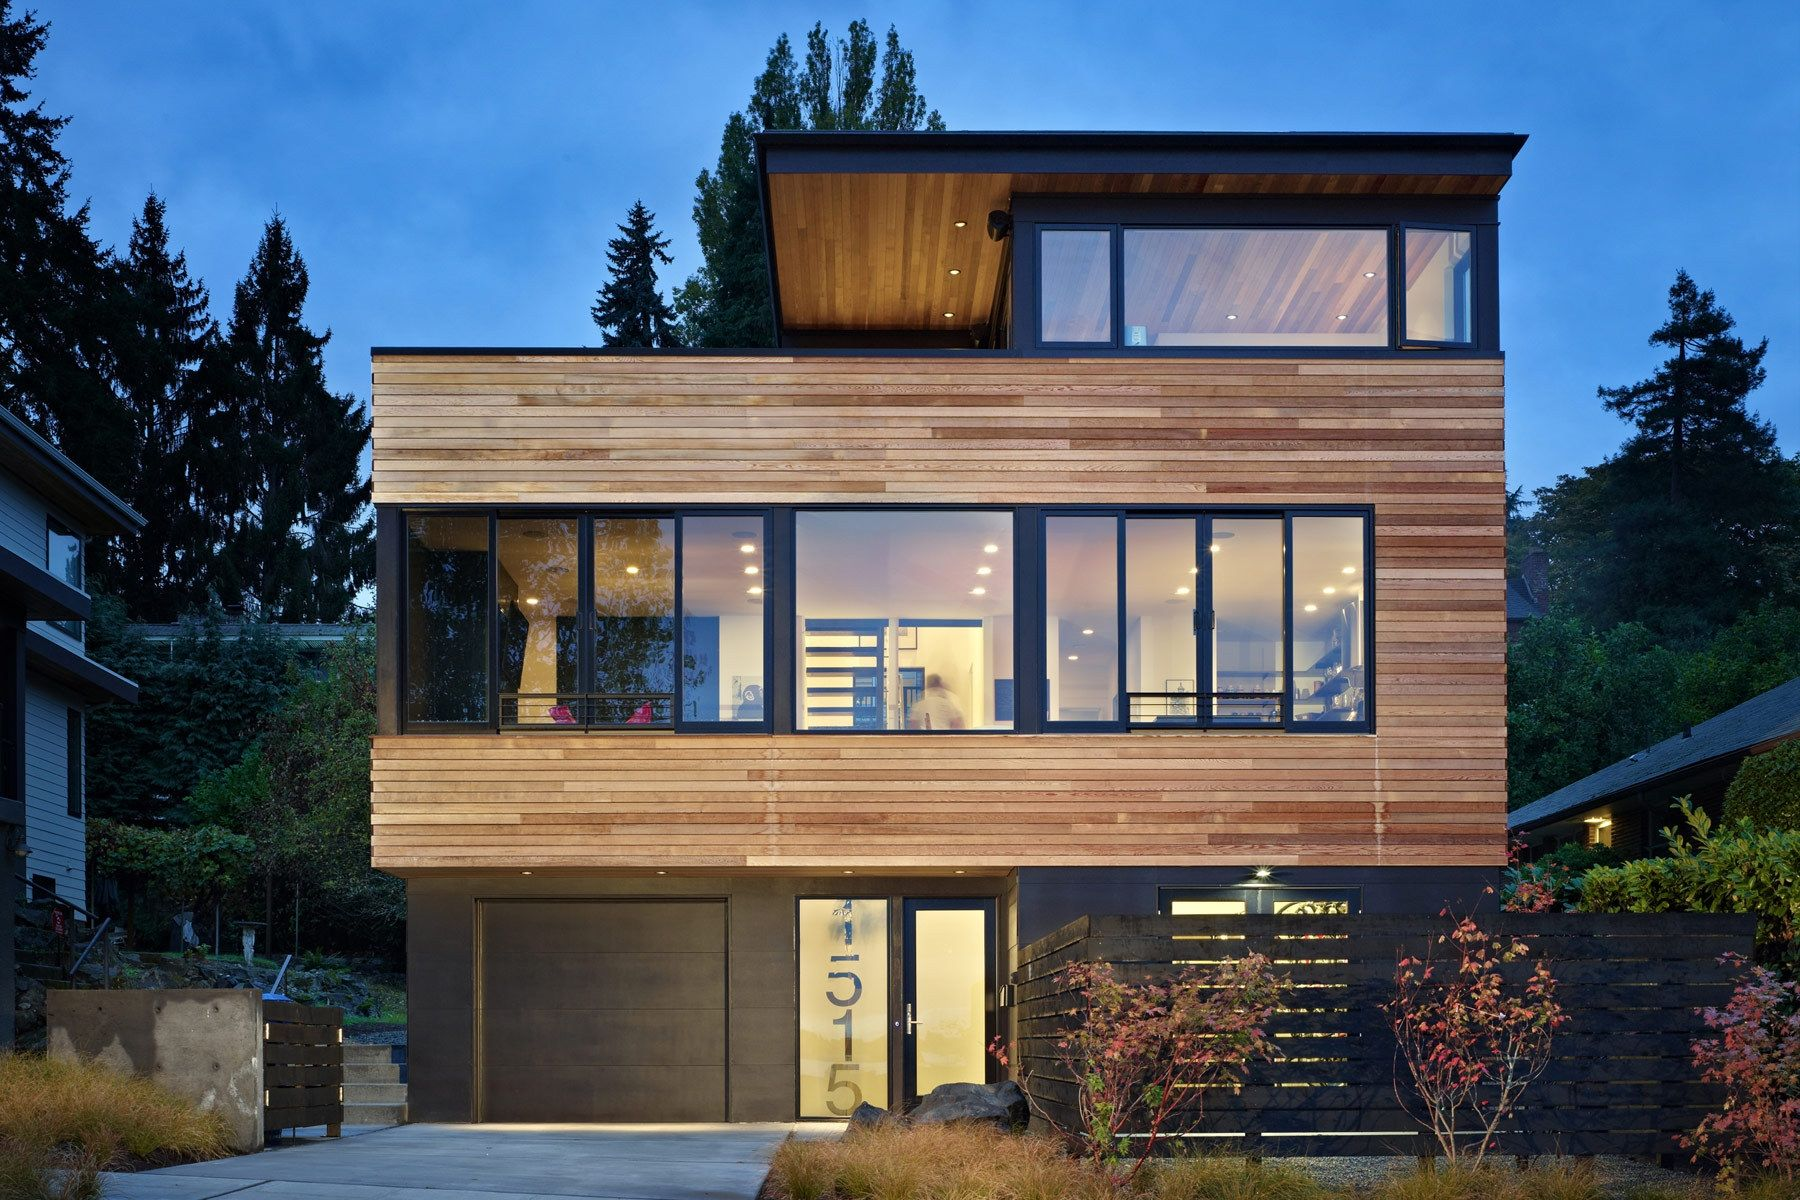 Architecture modern seattle home ranch house designs for Small home design ideas video